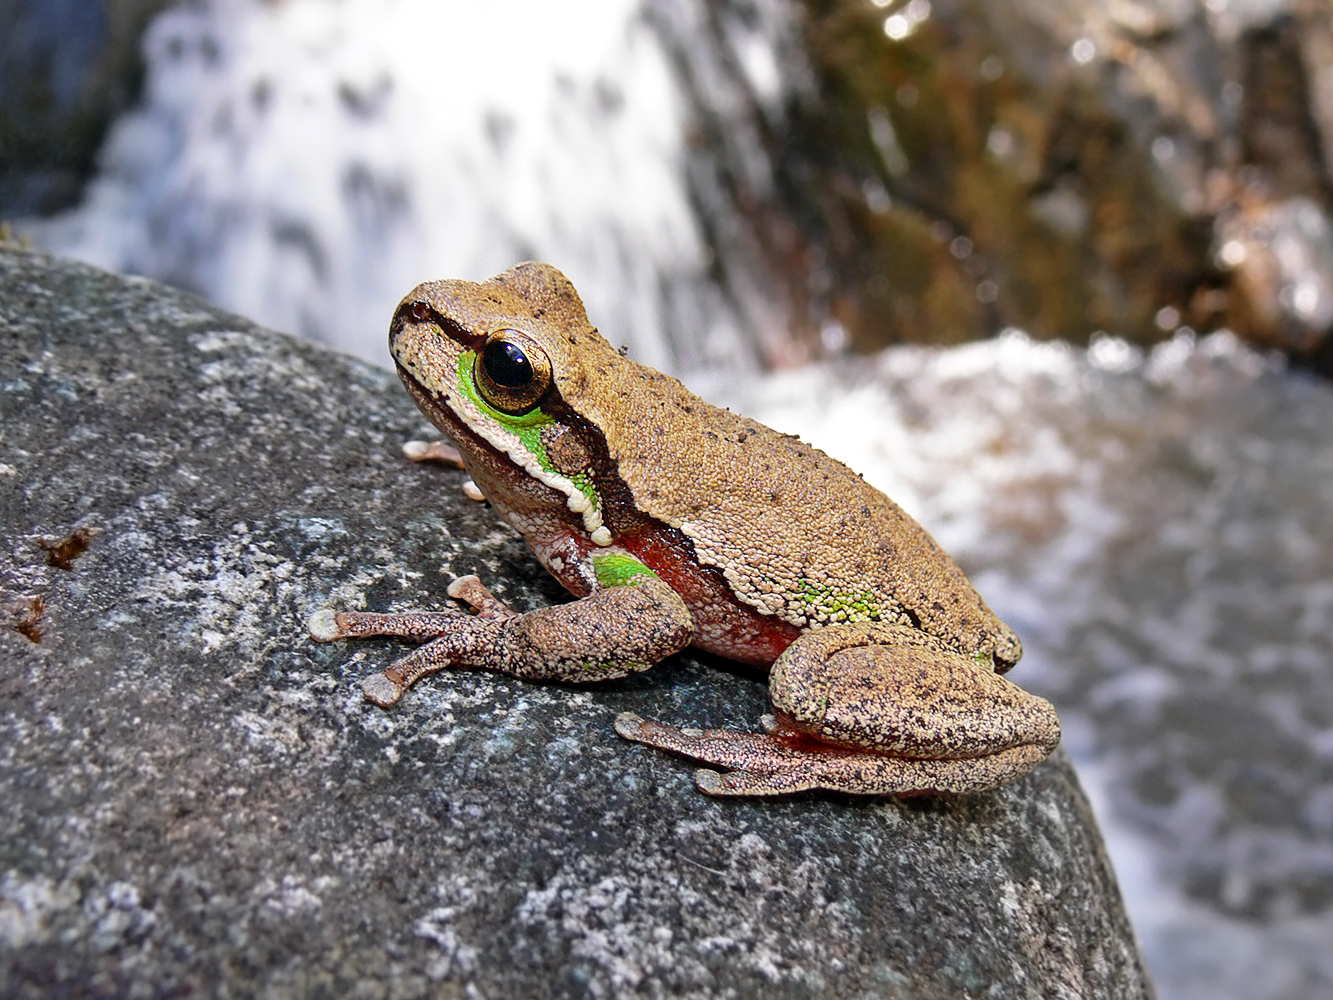 Amphibians: Blue Mountains Tree Frog